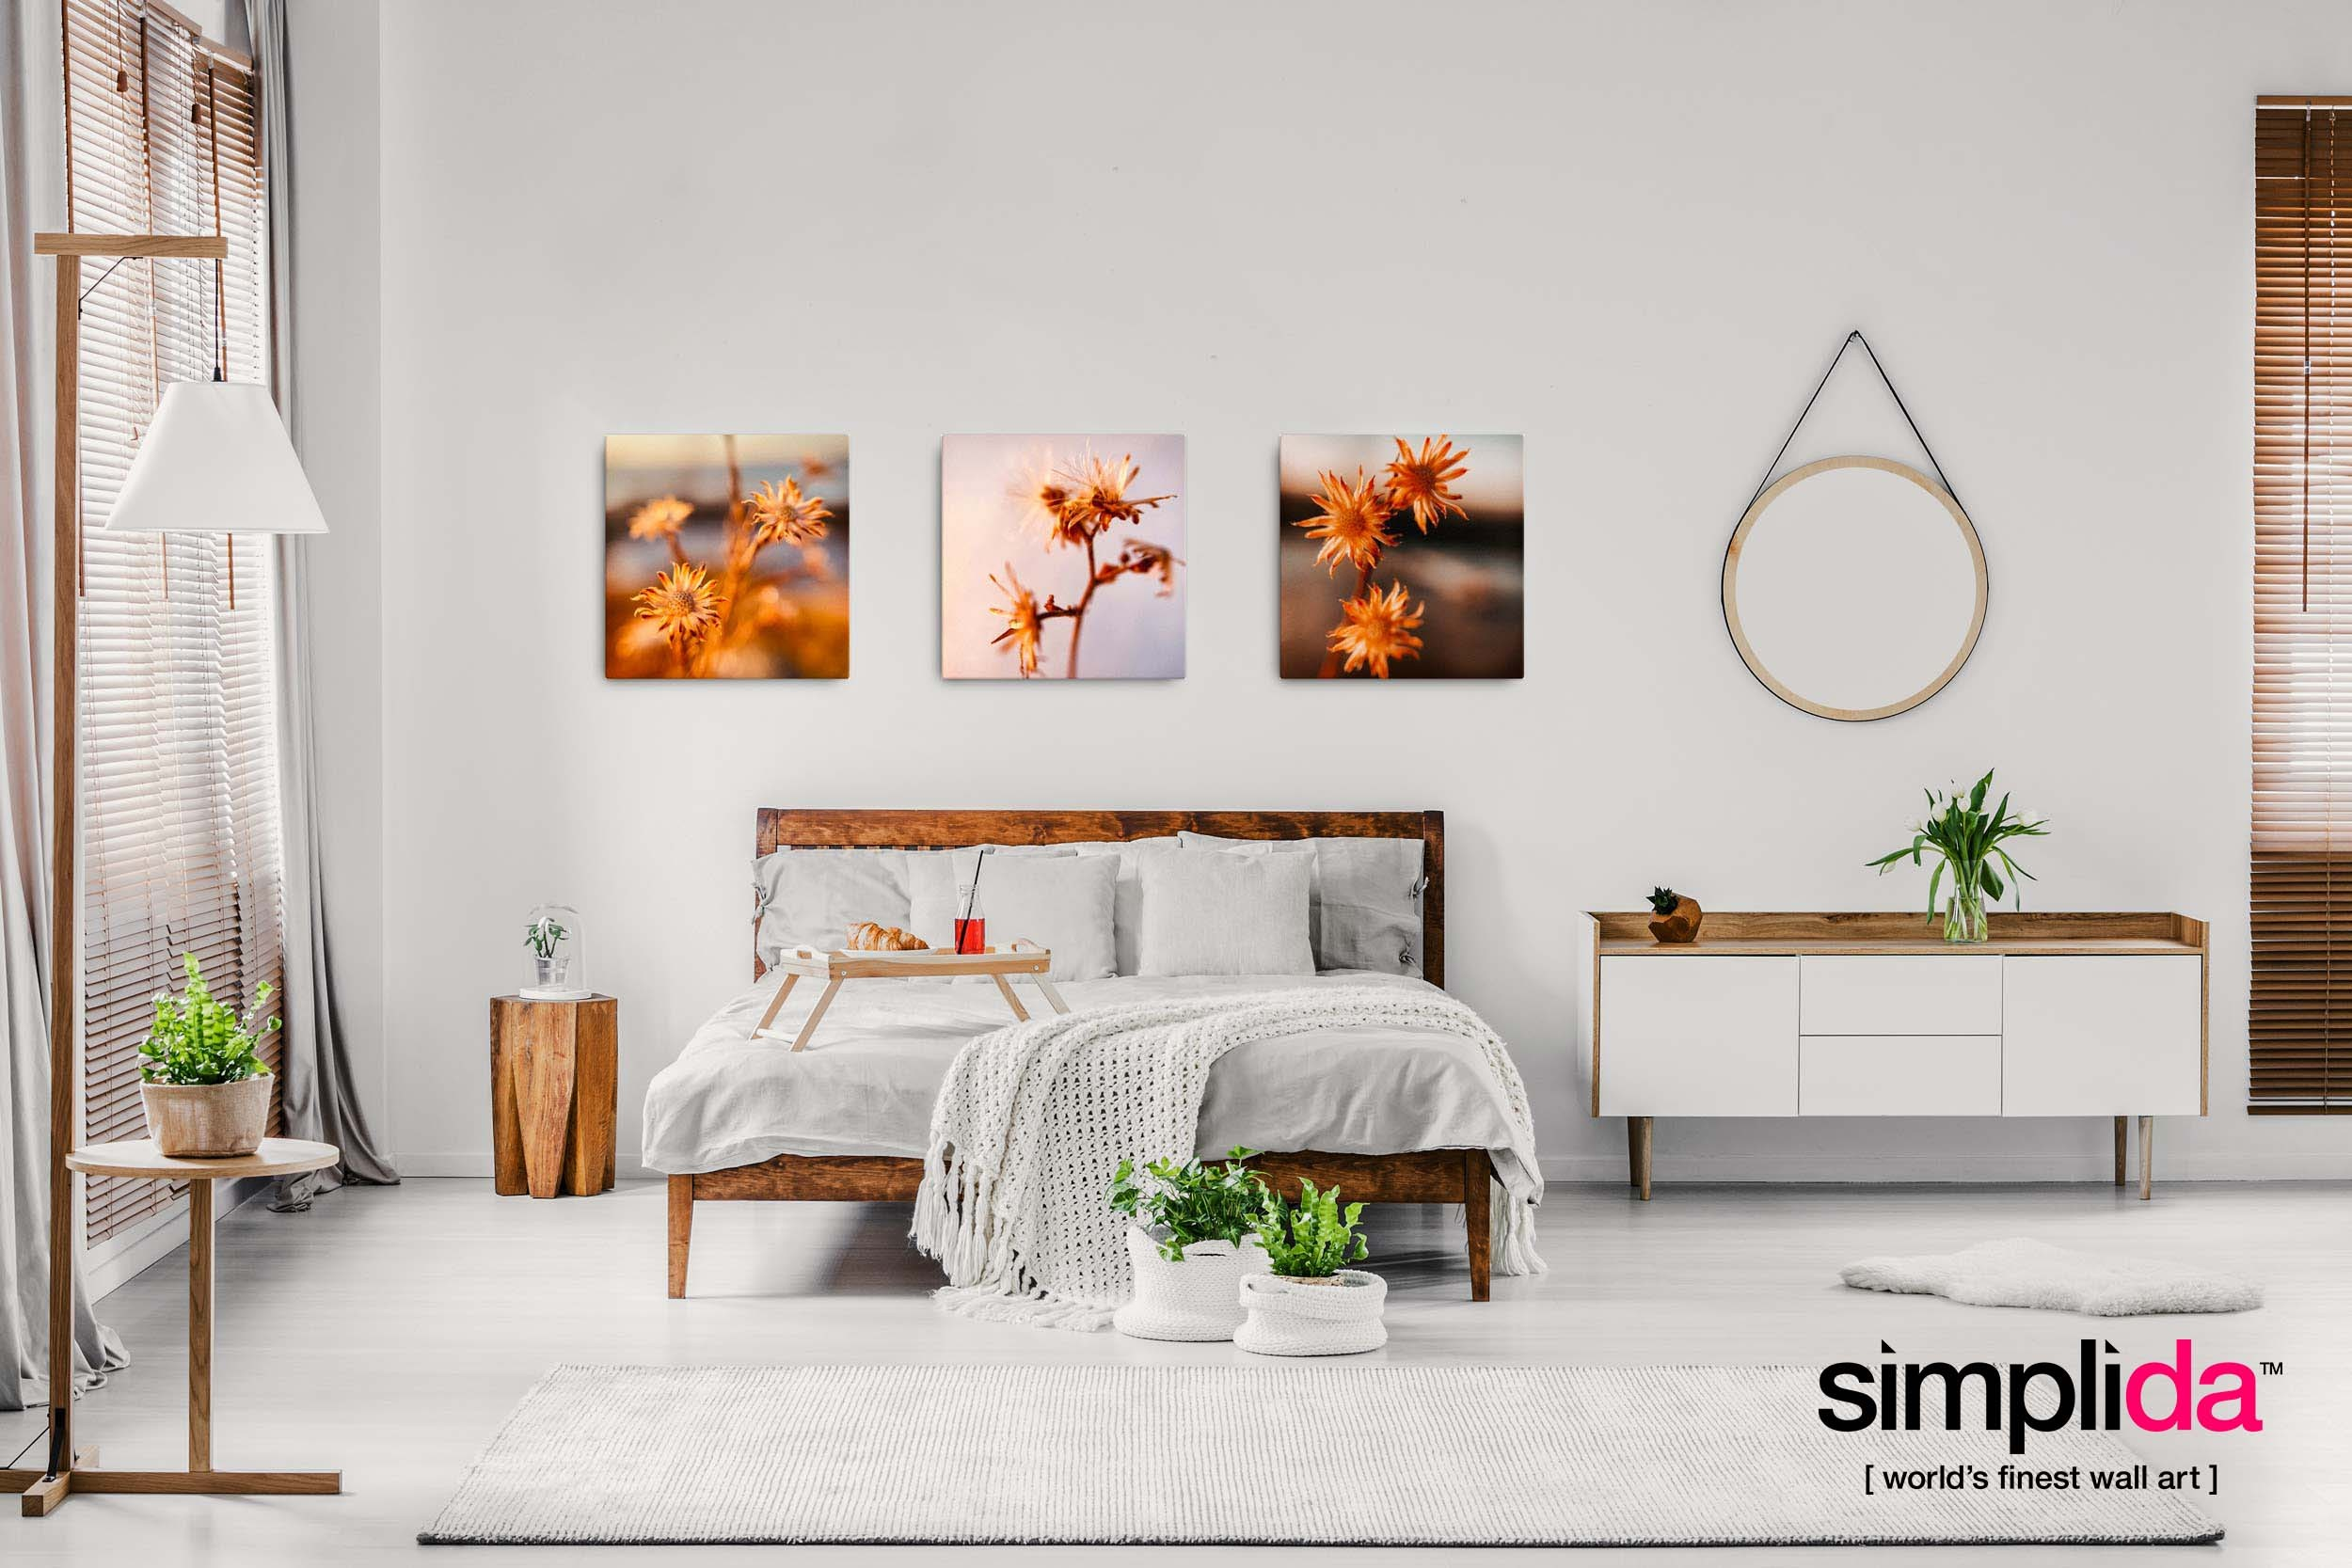 Wall Art Ideas for Your Bedroom – Fine Art Photography at Simplida.com